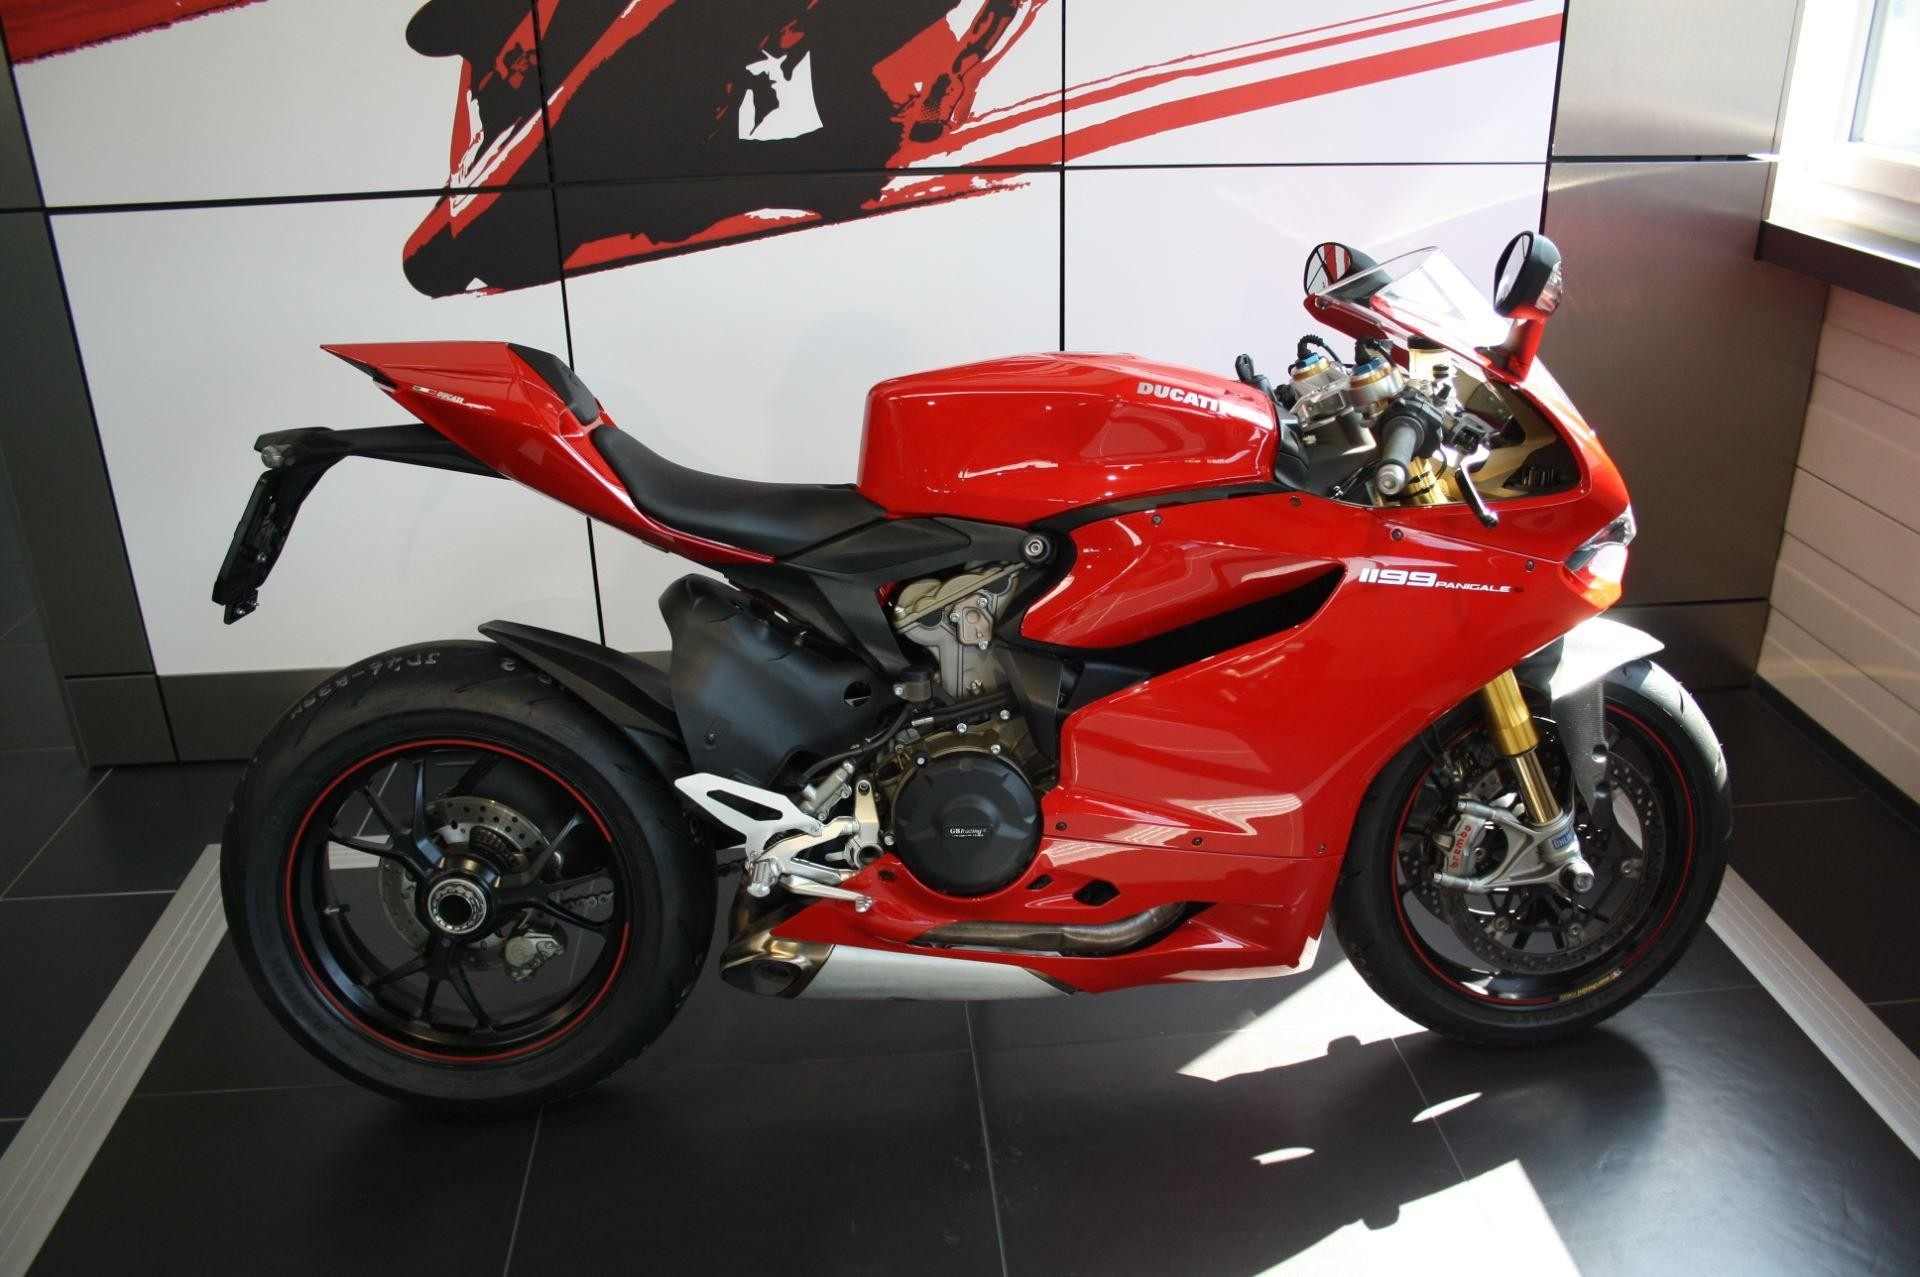 motorrad occasion kaufen ducati 1199 panigale s ducati. Black Bedroom Furniture Sets. Home Design Ideas